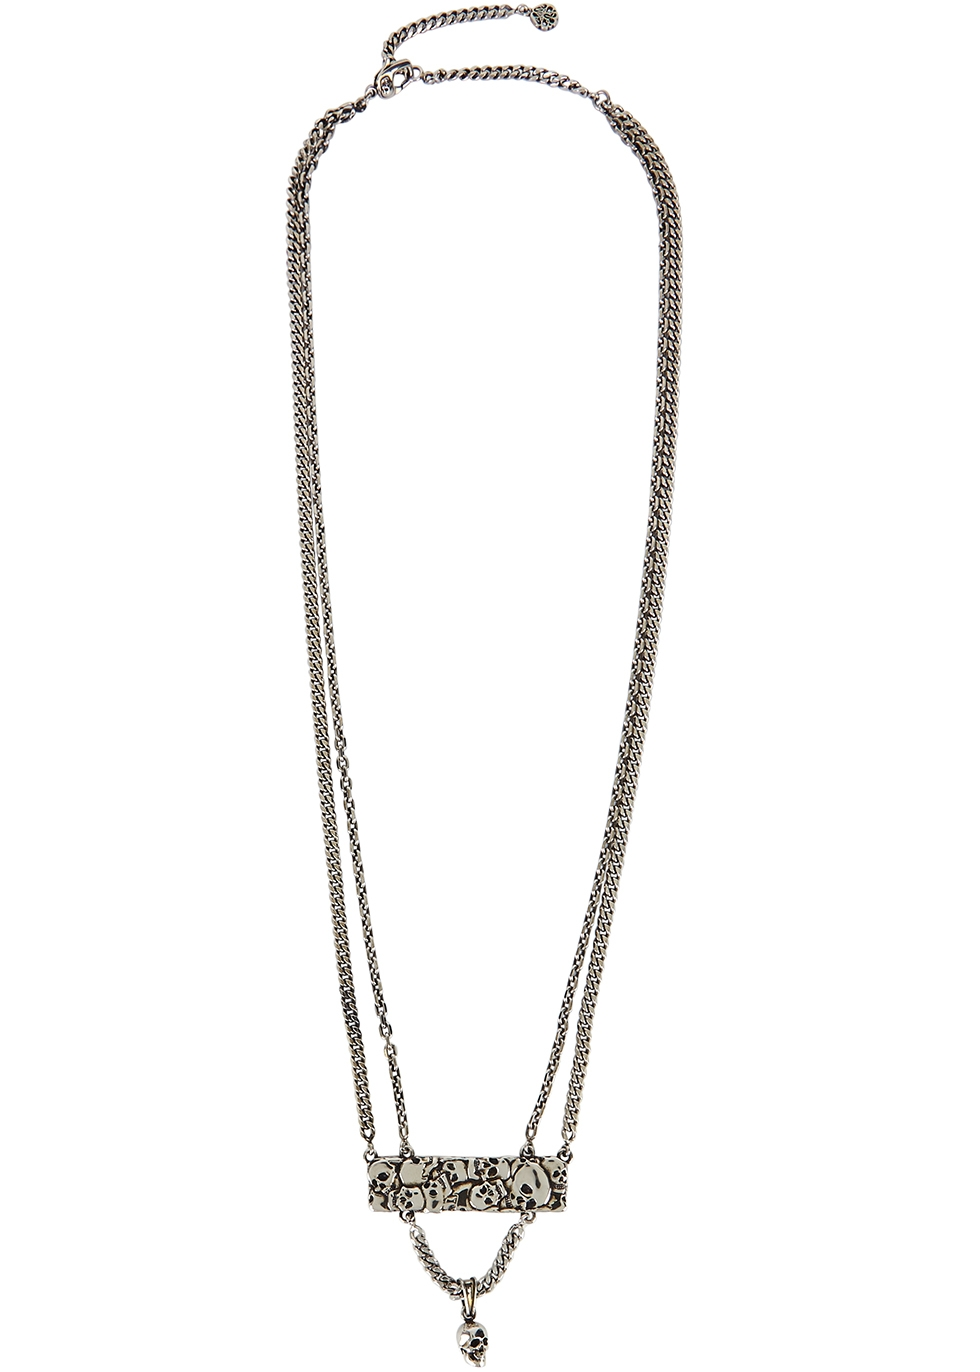 Crushed Skull silver-tone chain necklace